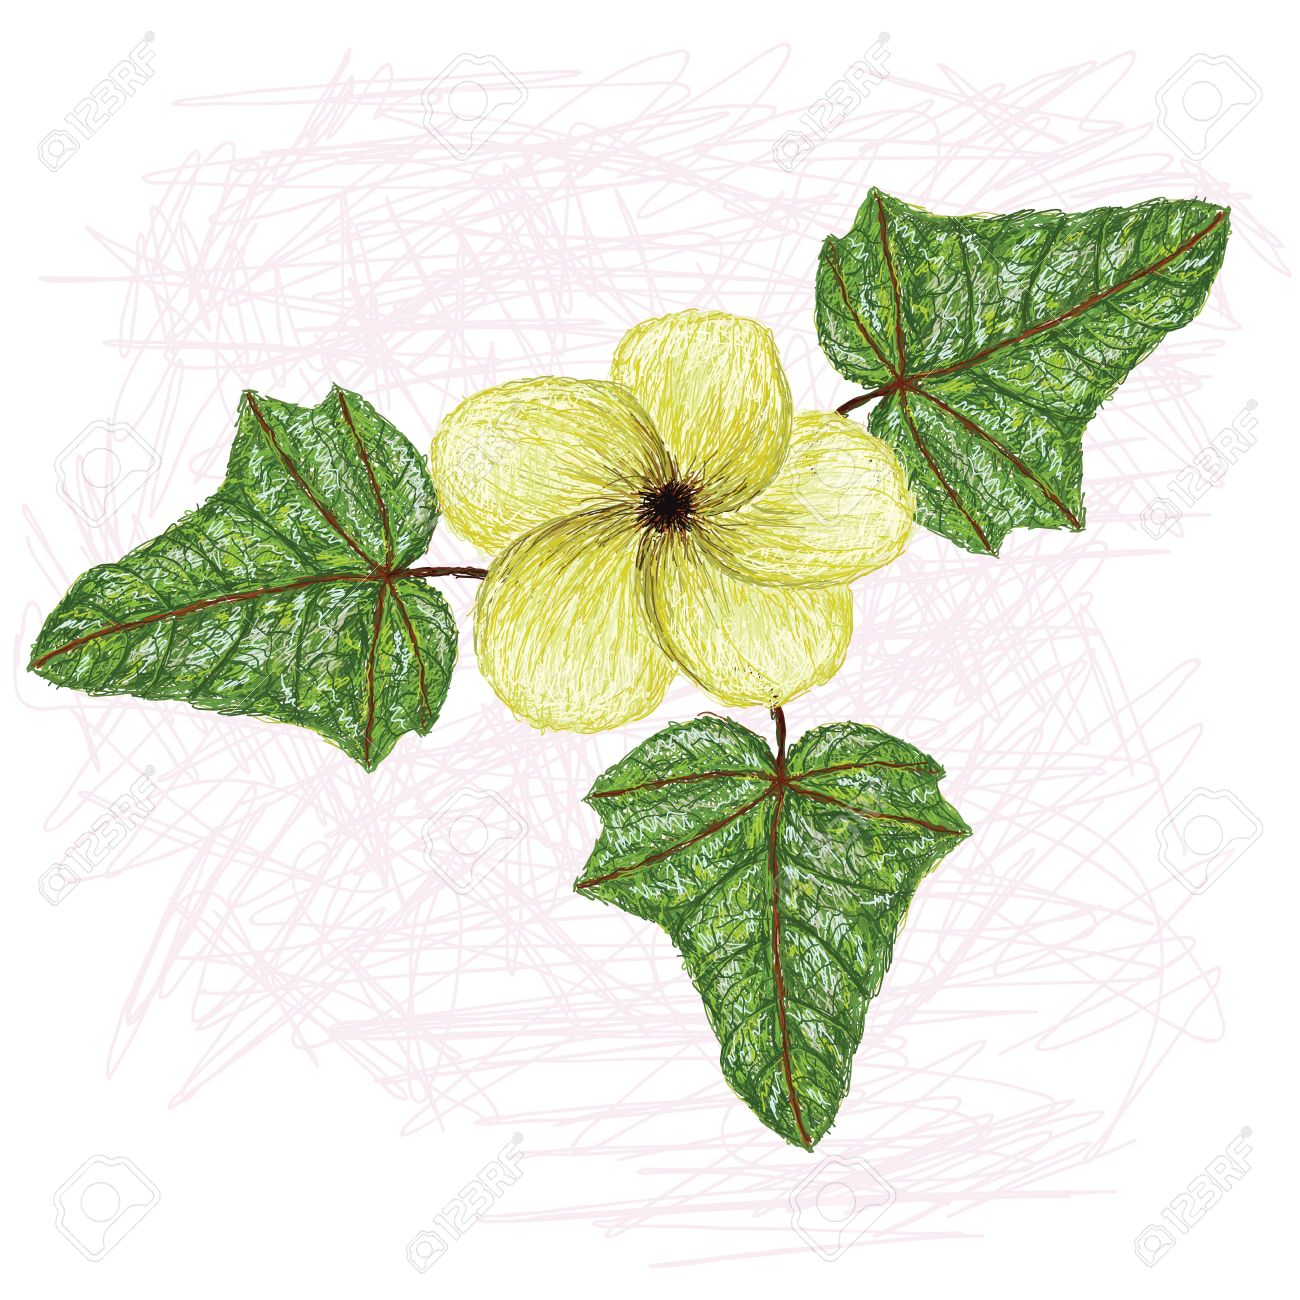 Illustration Of Edible Lagikway Leaves And Flower Scientific.